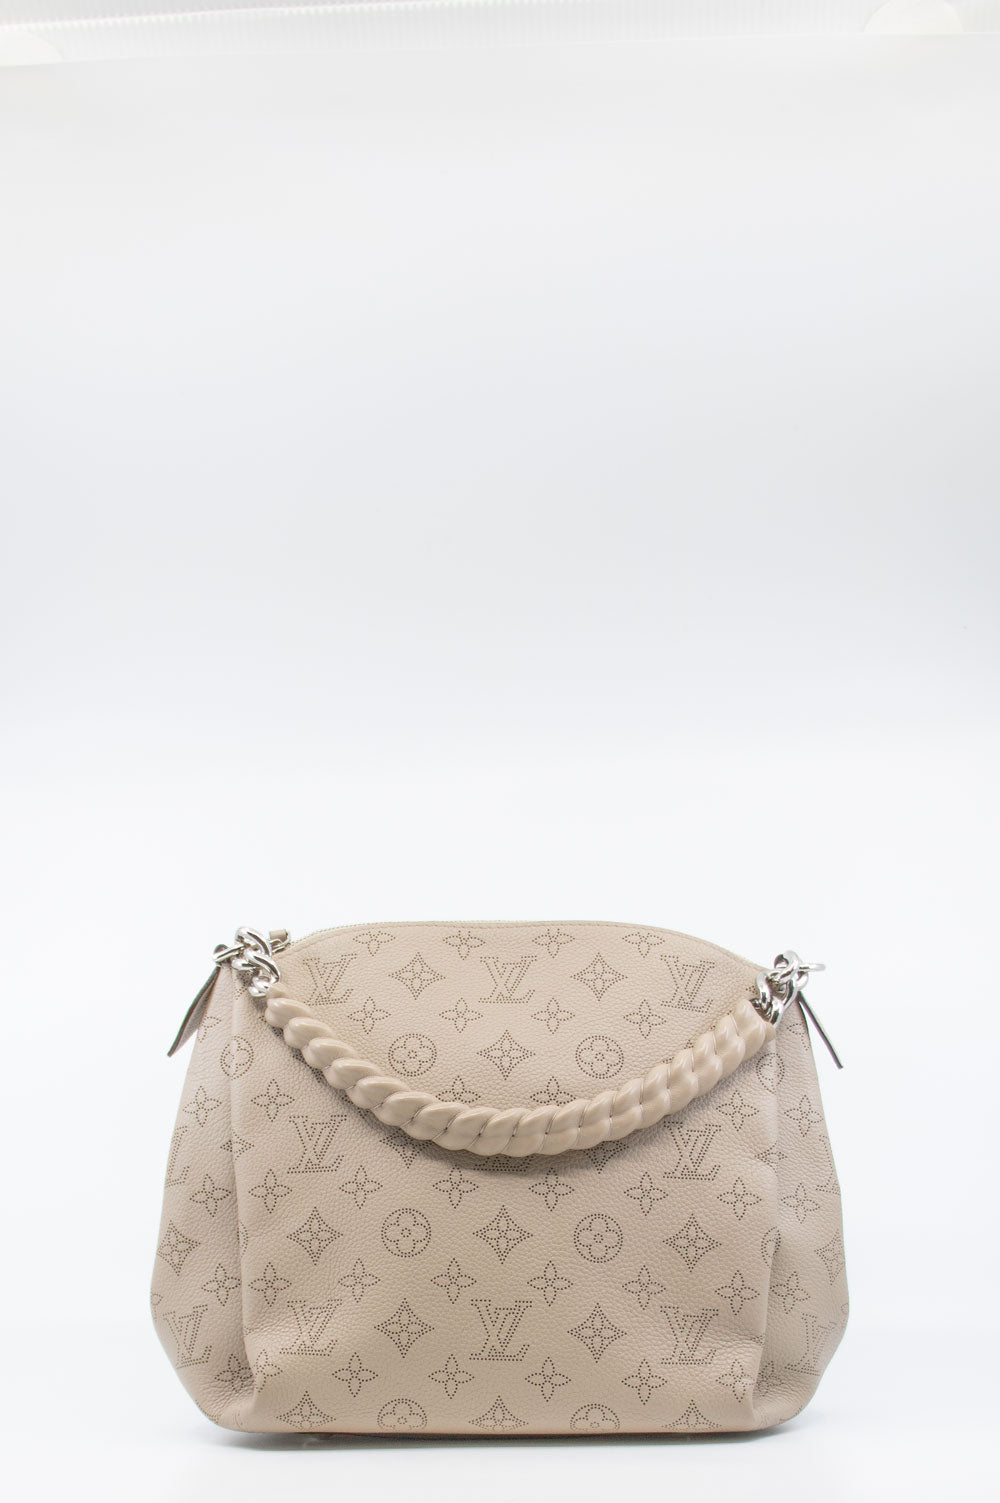 LOUIS VUITTON Babylone BB Bag Mahina Leather Taupe